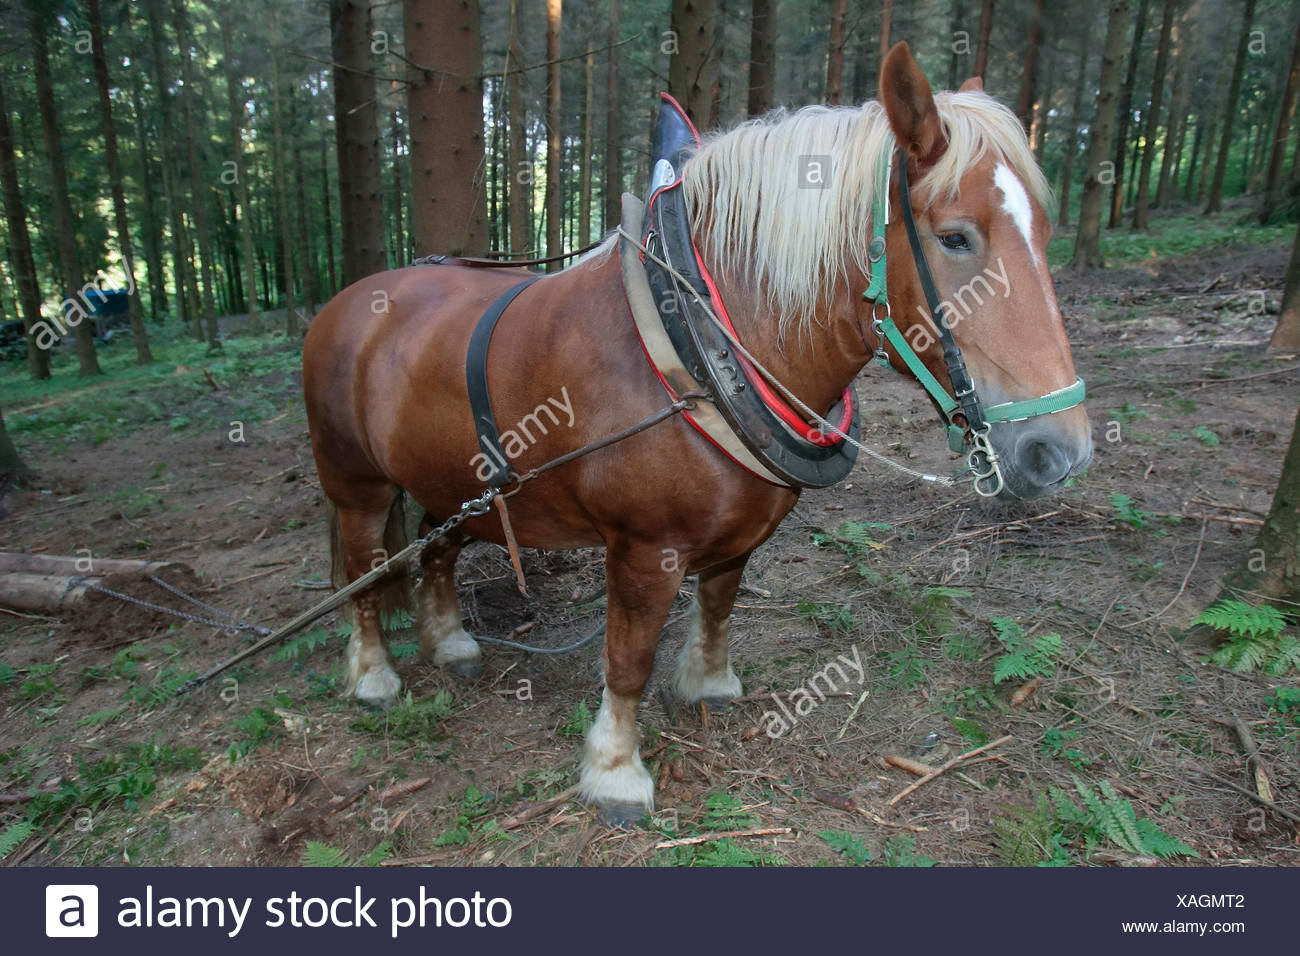 Workhorse at work - Stock Image